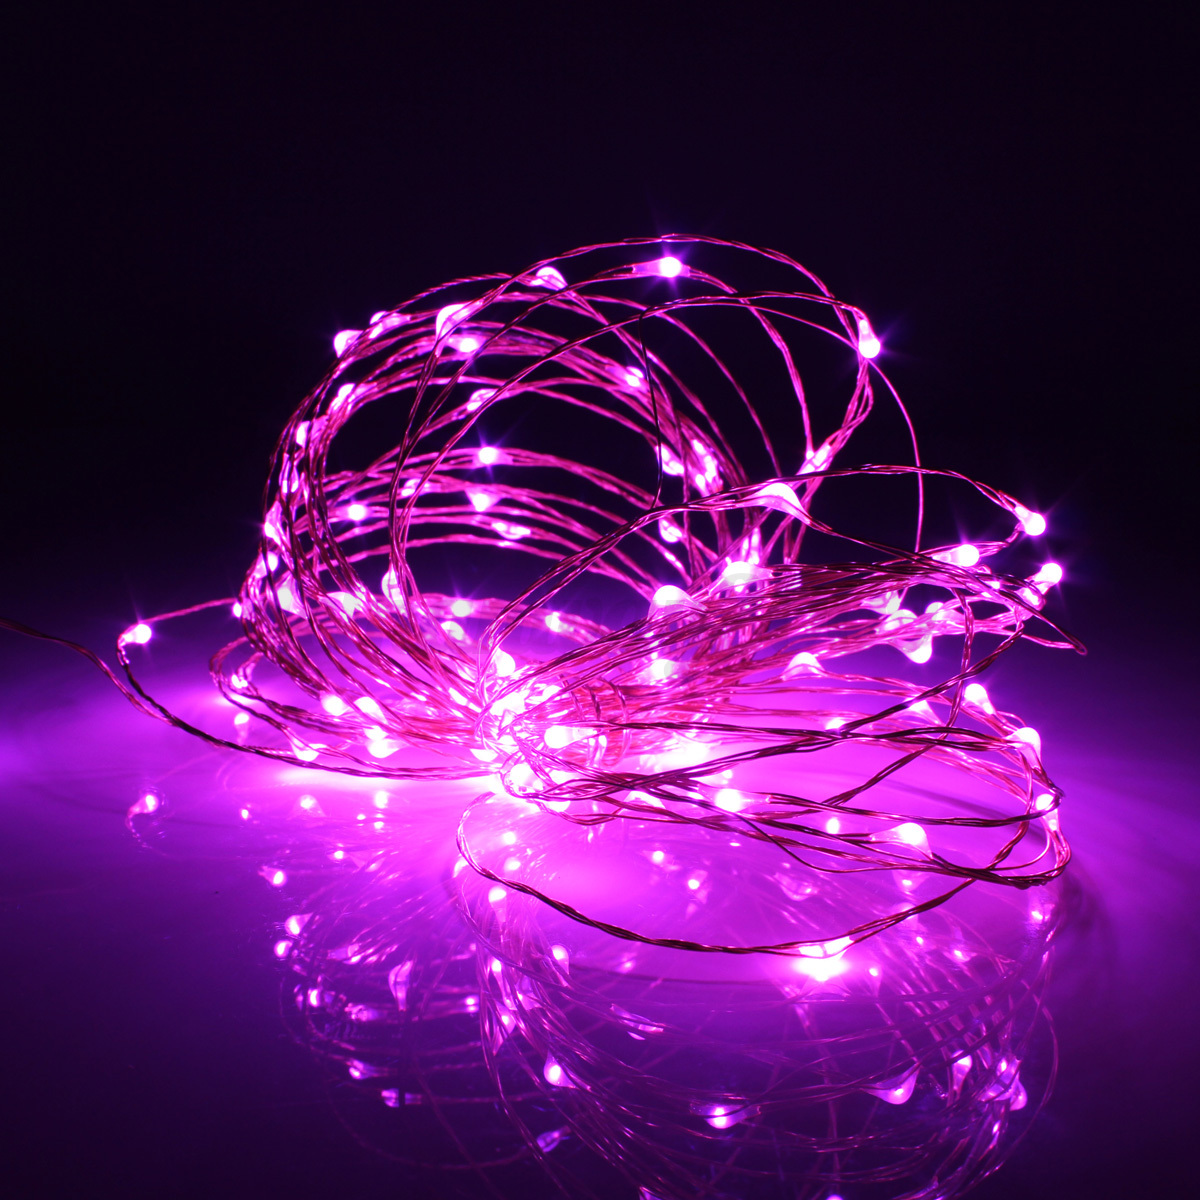 Starlight Led String Lights 10 Copper Wire : 10M 100 LED Solar Powered Starry String Fairy Light Copper Wire Ambiance Light eBay